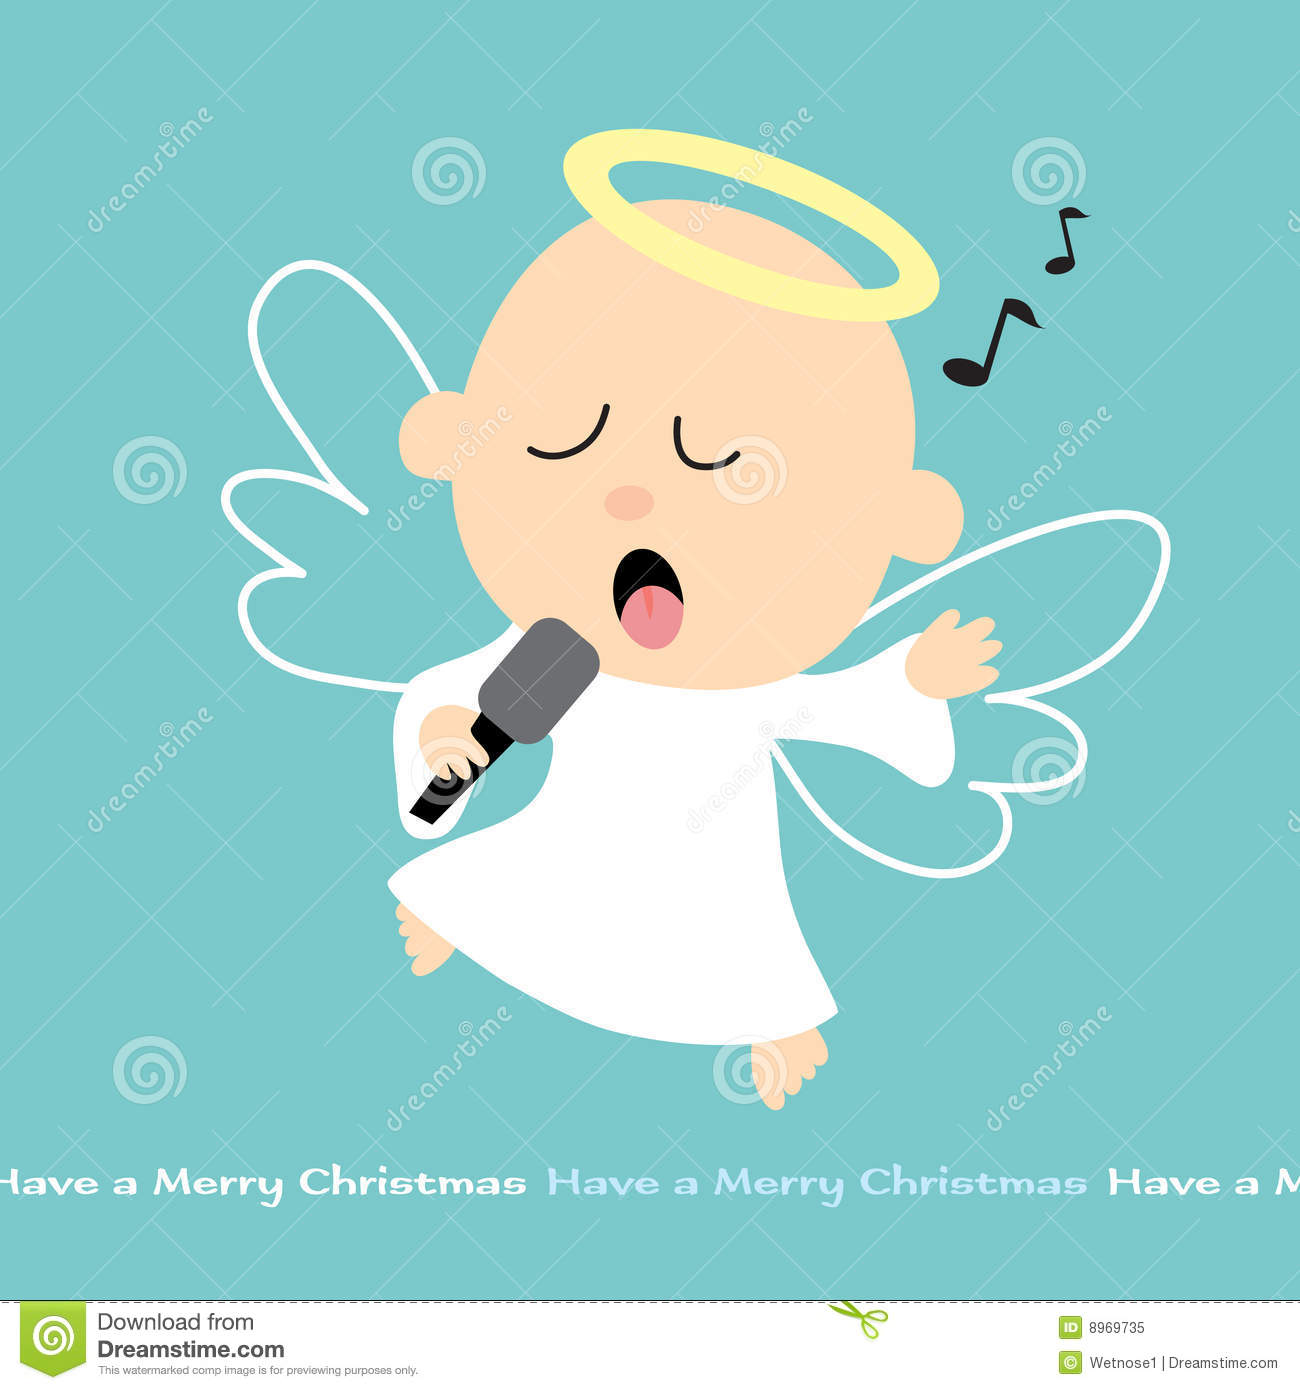 The Singing Angels - Finally It's Christmas With The Singing Angels